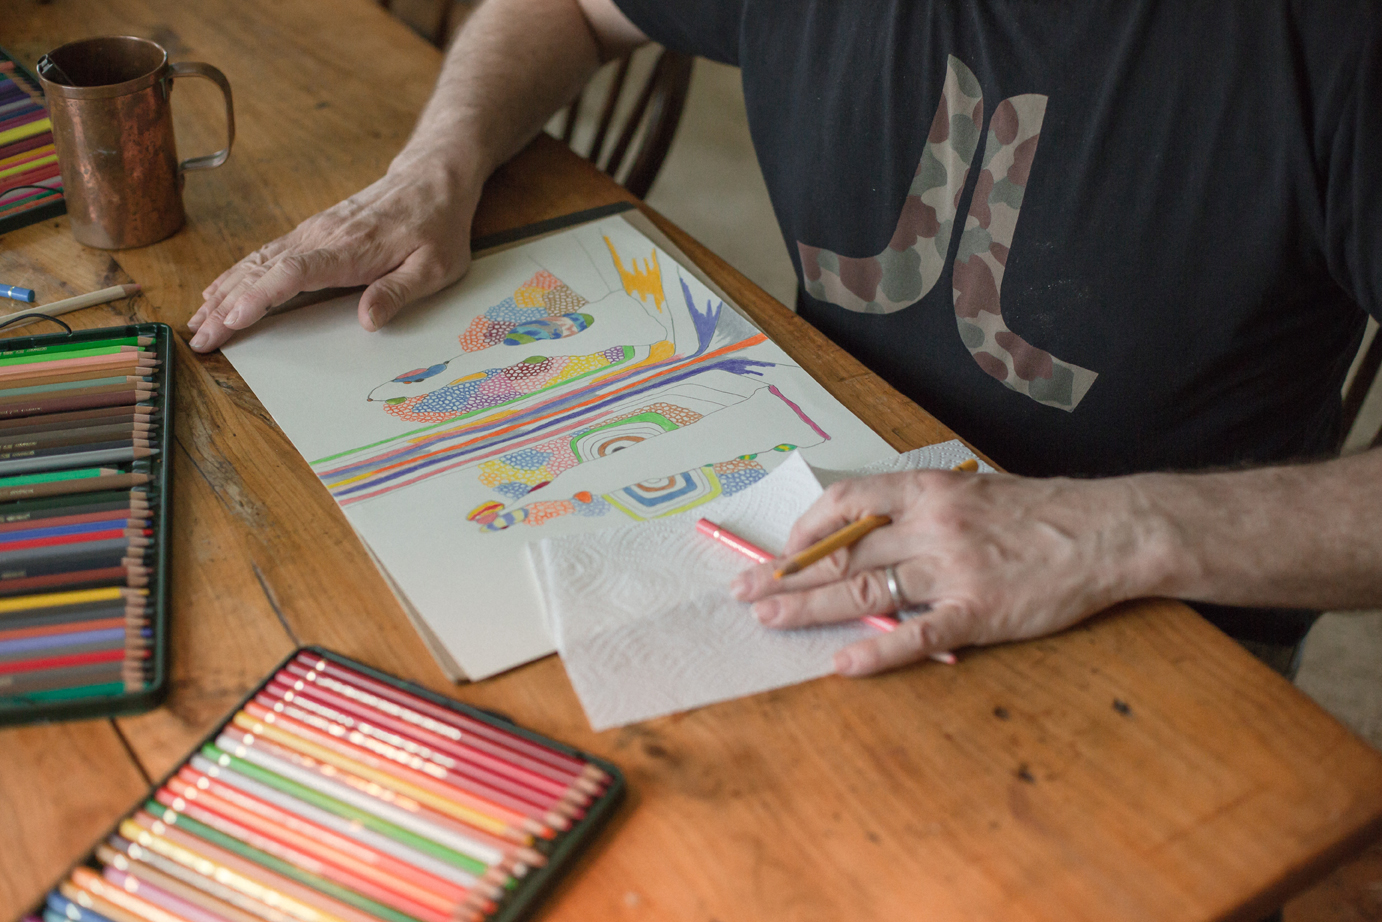 Working on a color pencil drawing in Windrift Hall 2018